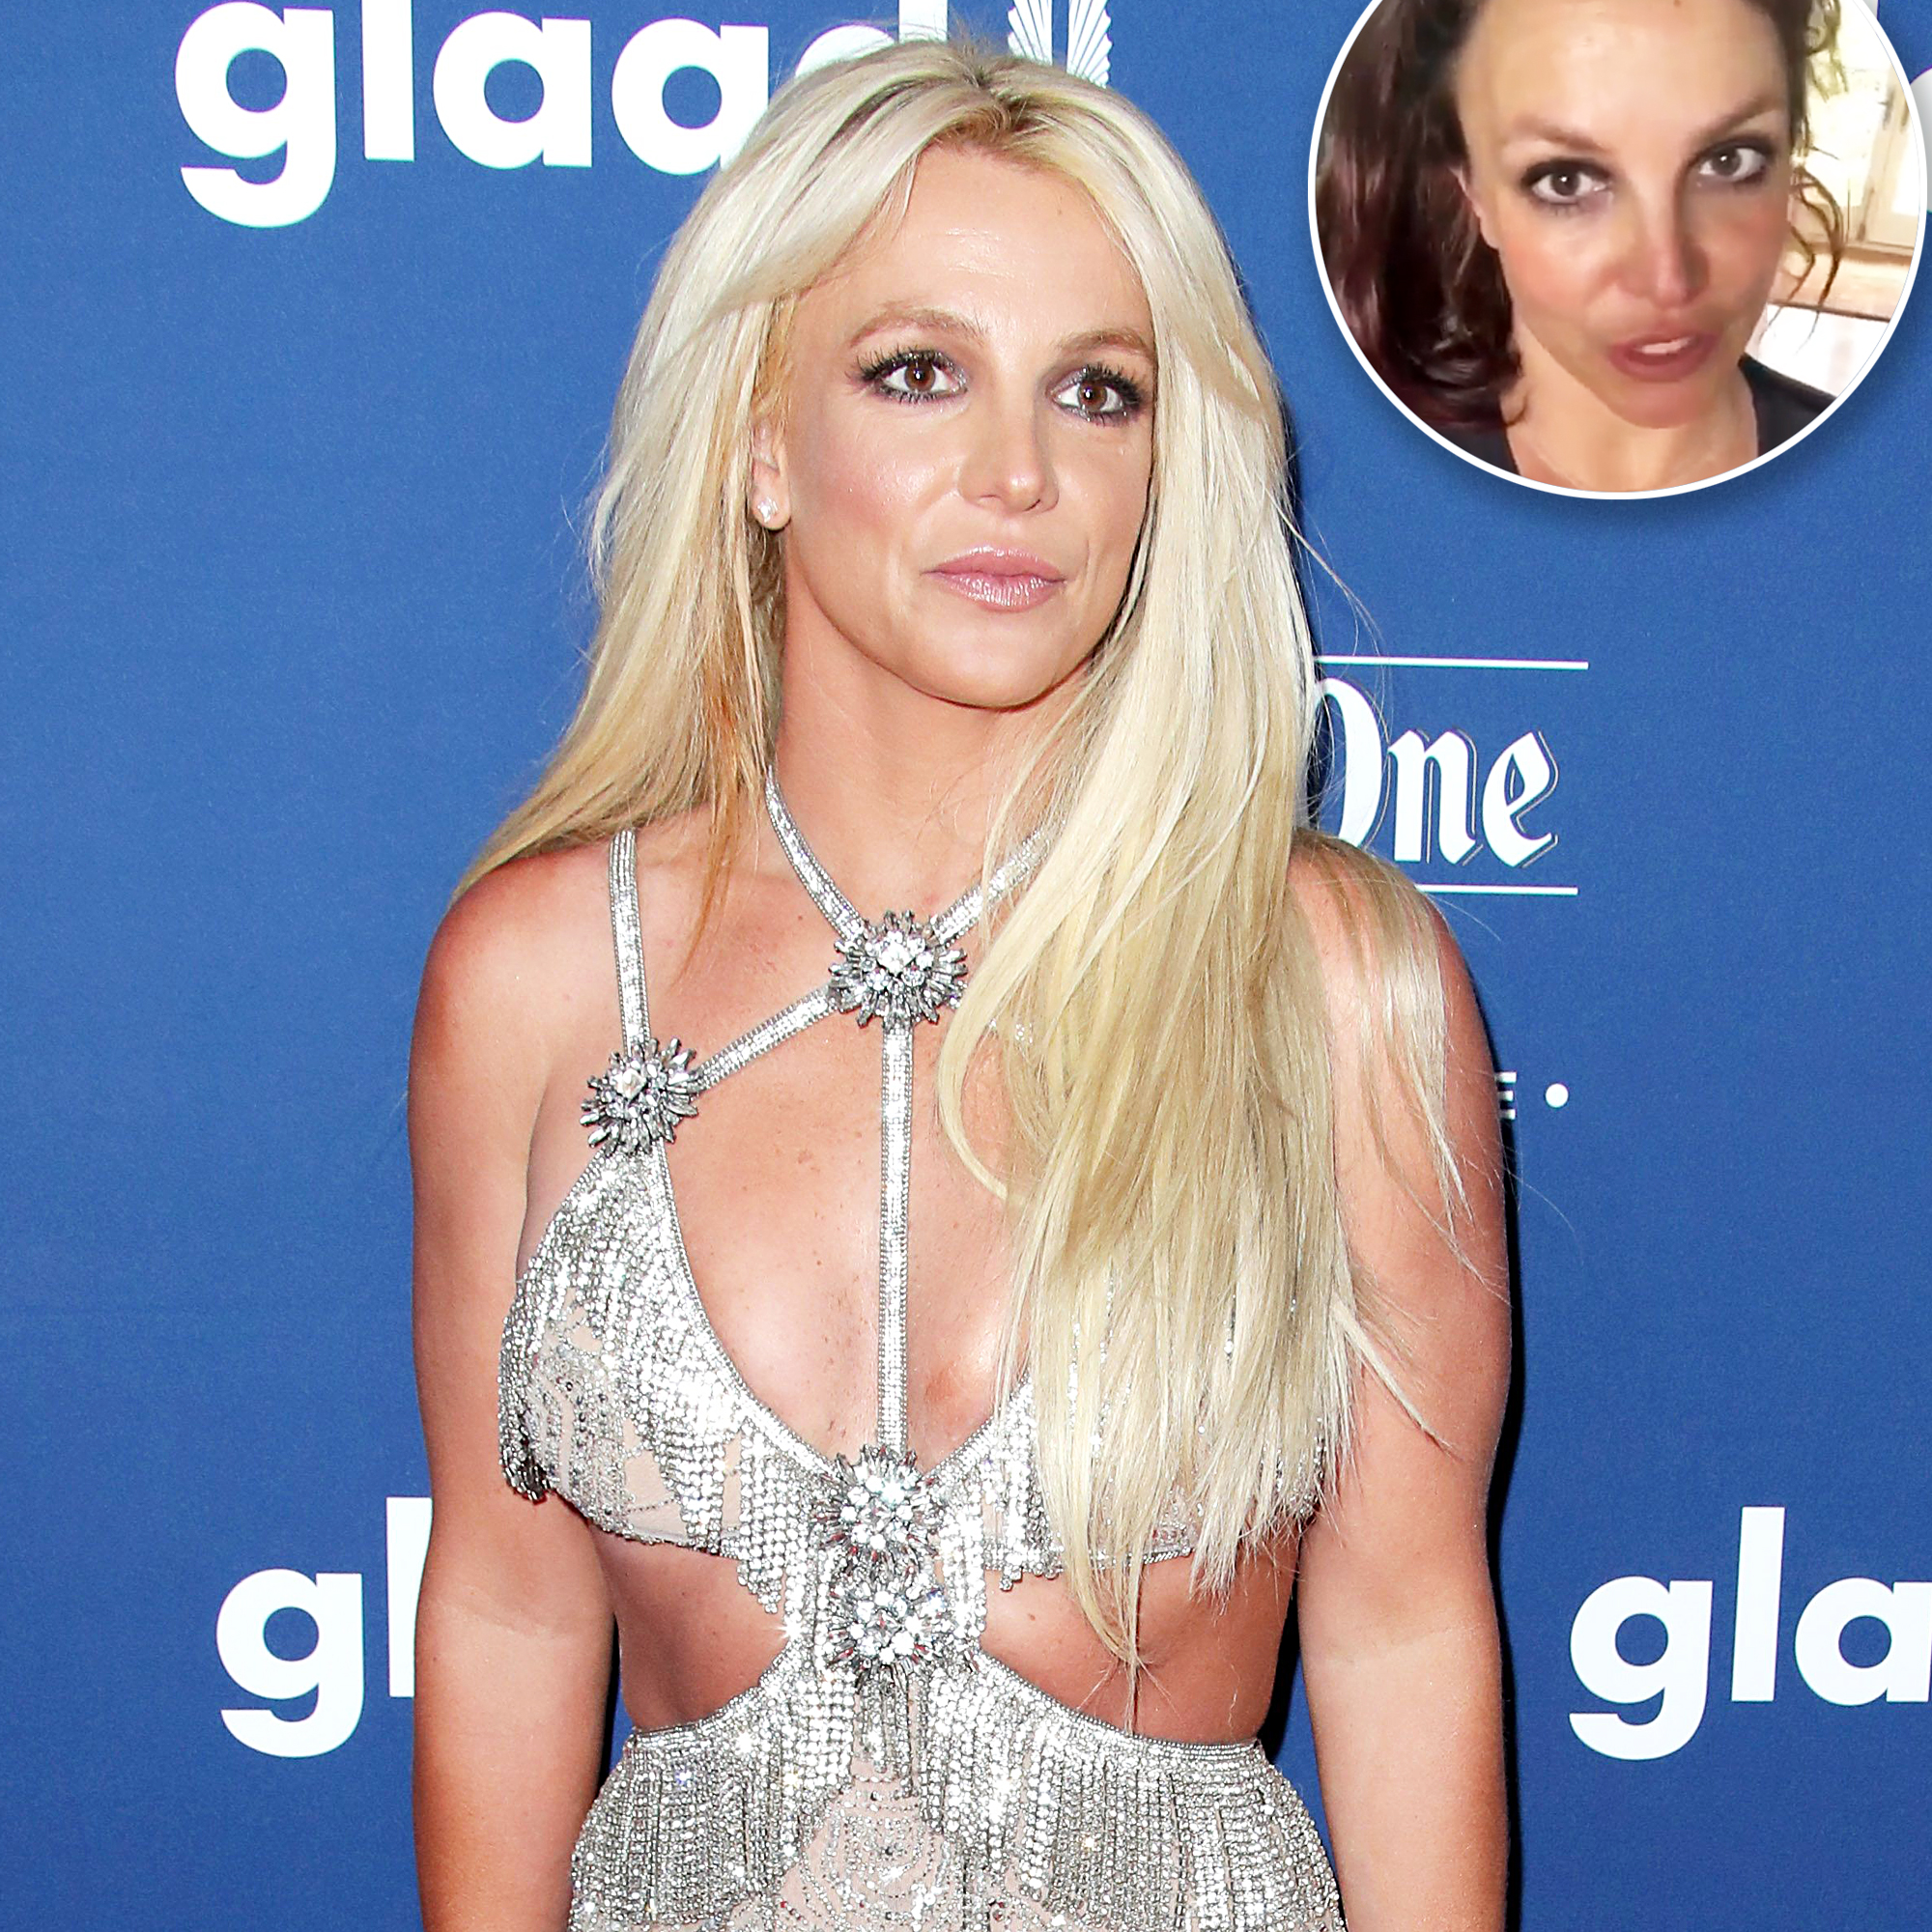 Britney Spears Criticized for Her Look While Working Out: 'Find Out How to Apply Makeup'